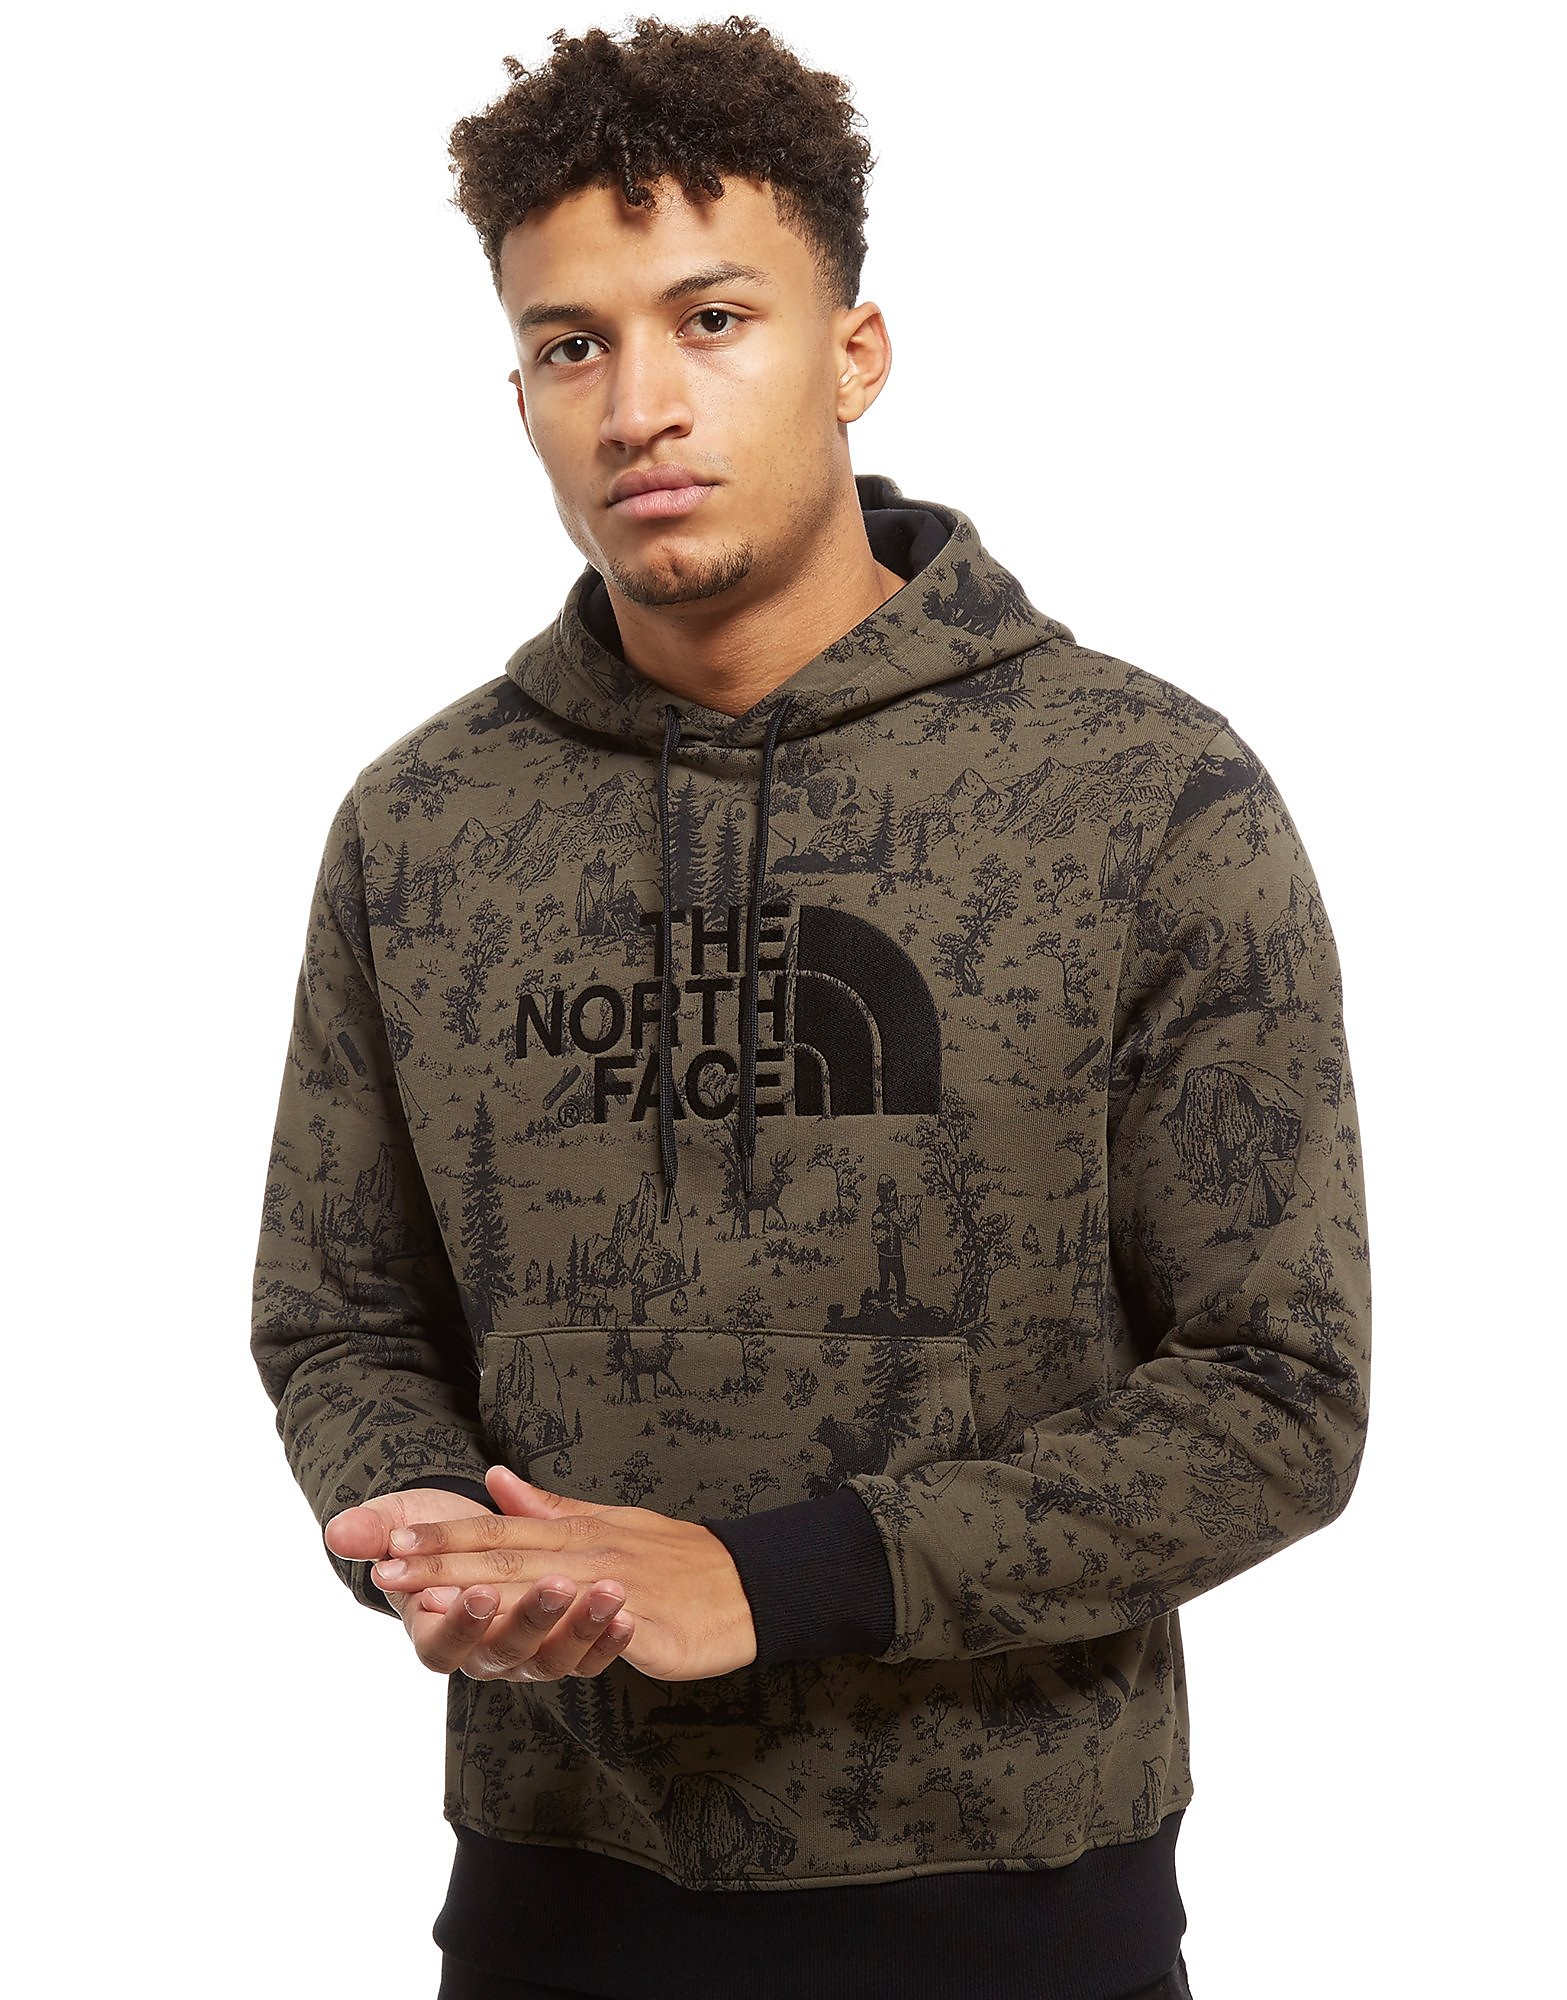 The North Face Drew Peak All Over Print Hoodie